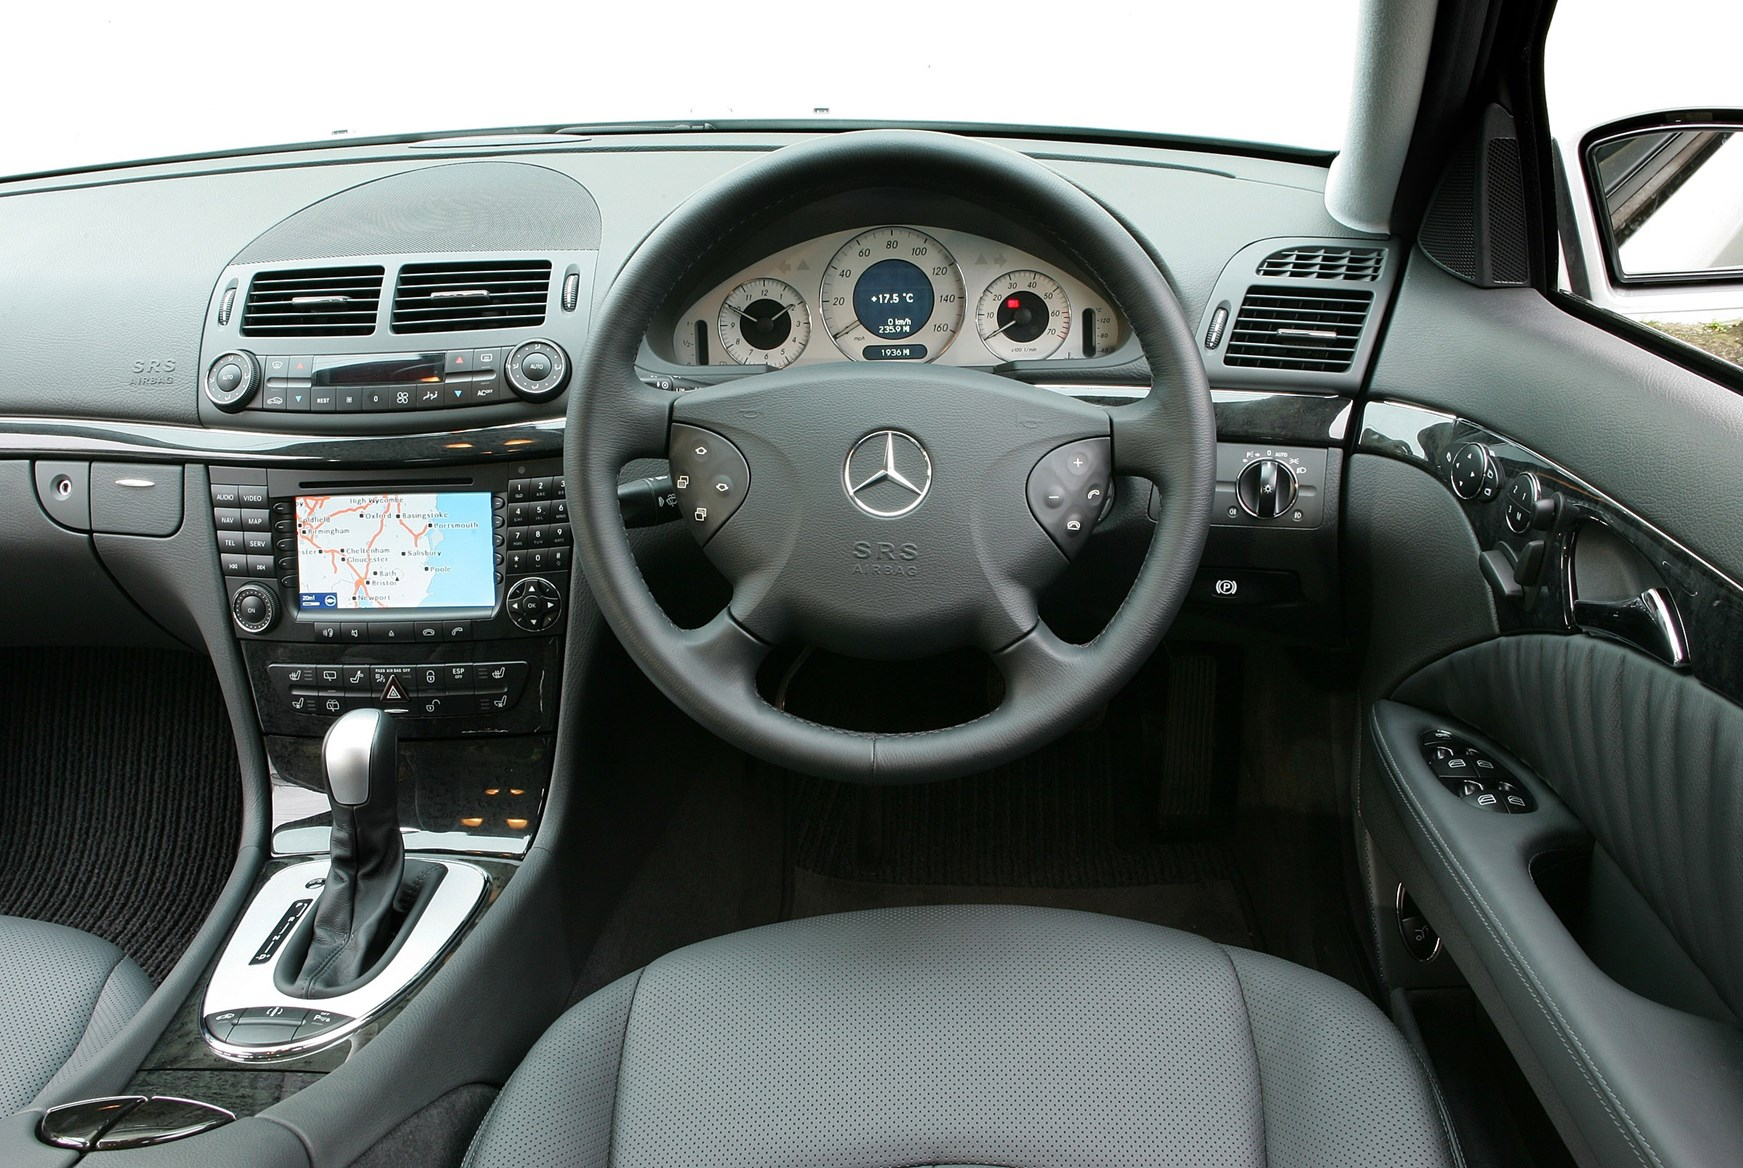 Used Mercedes-Benz E-Class Estate (2003 - 2008) MPG | Parkers